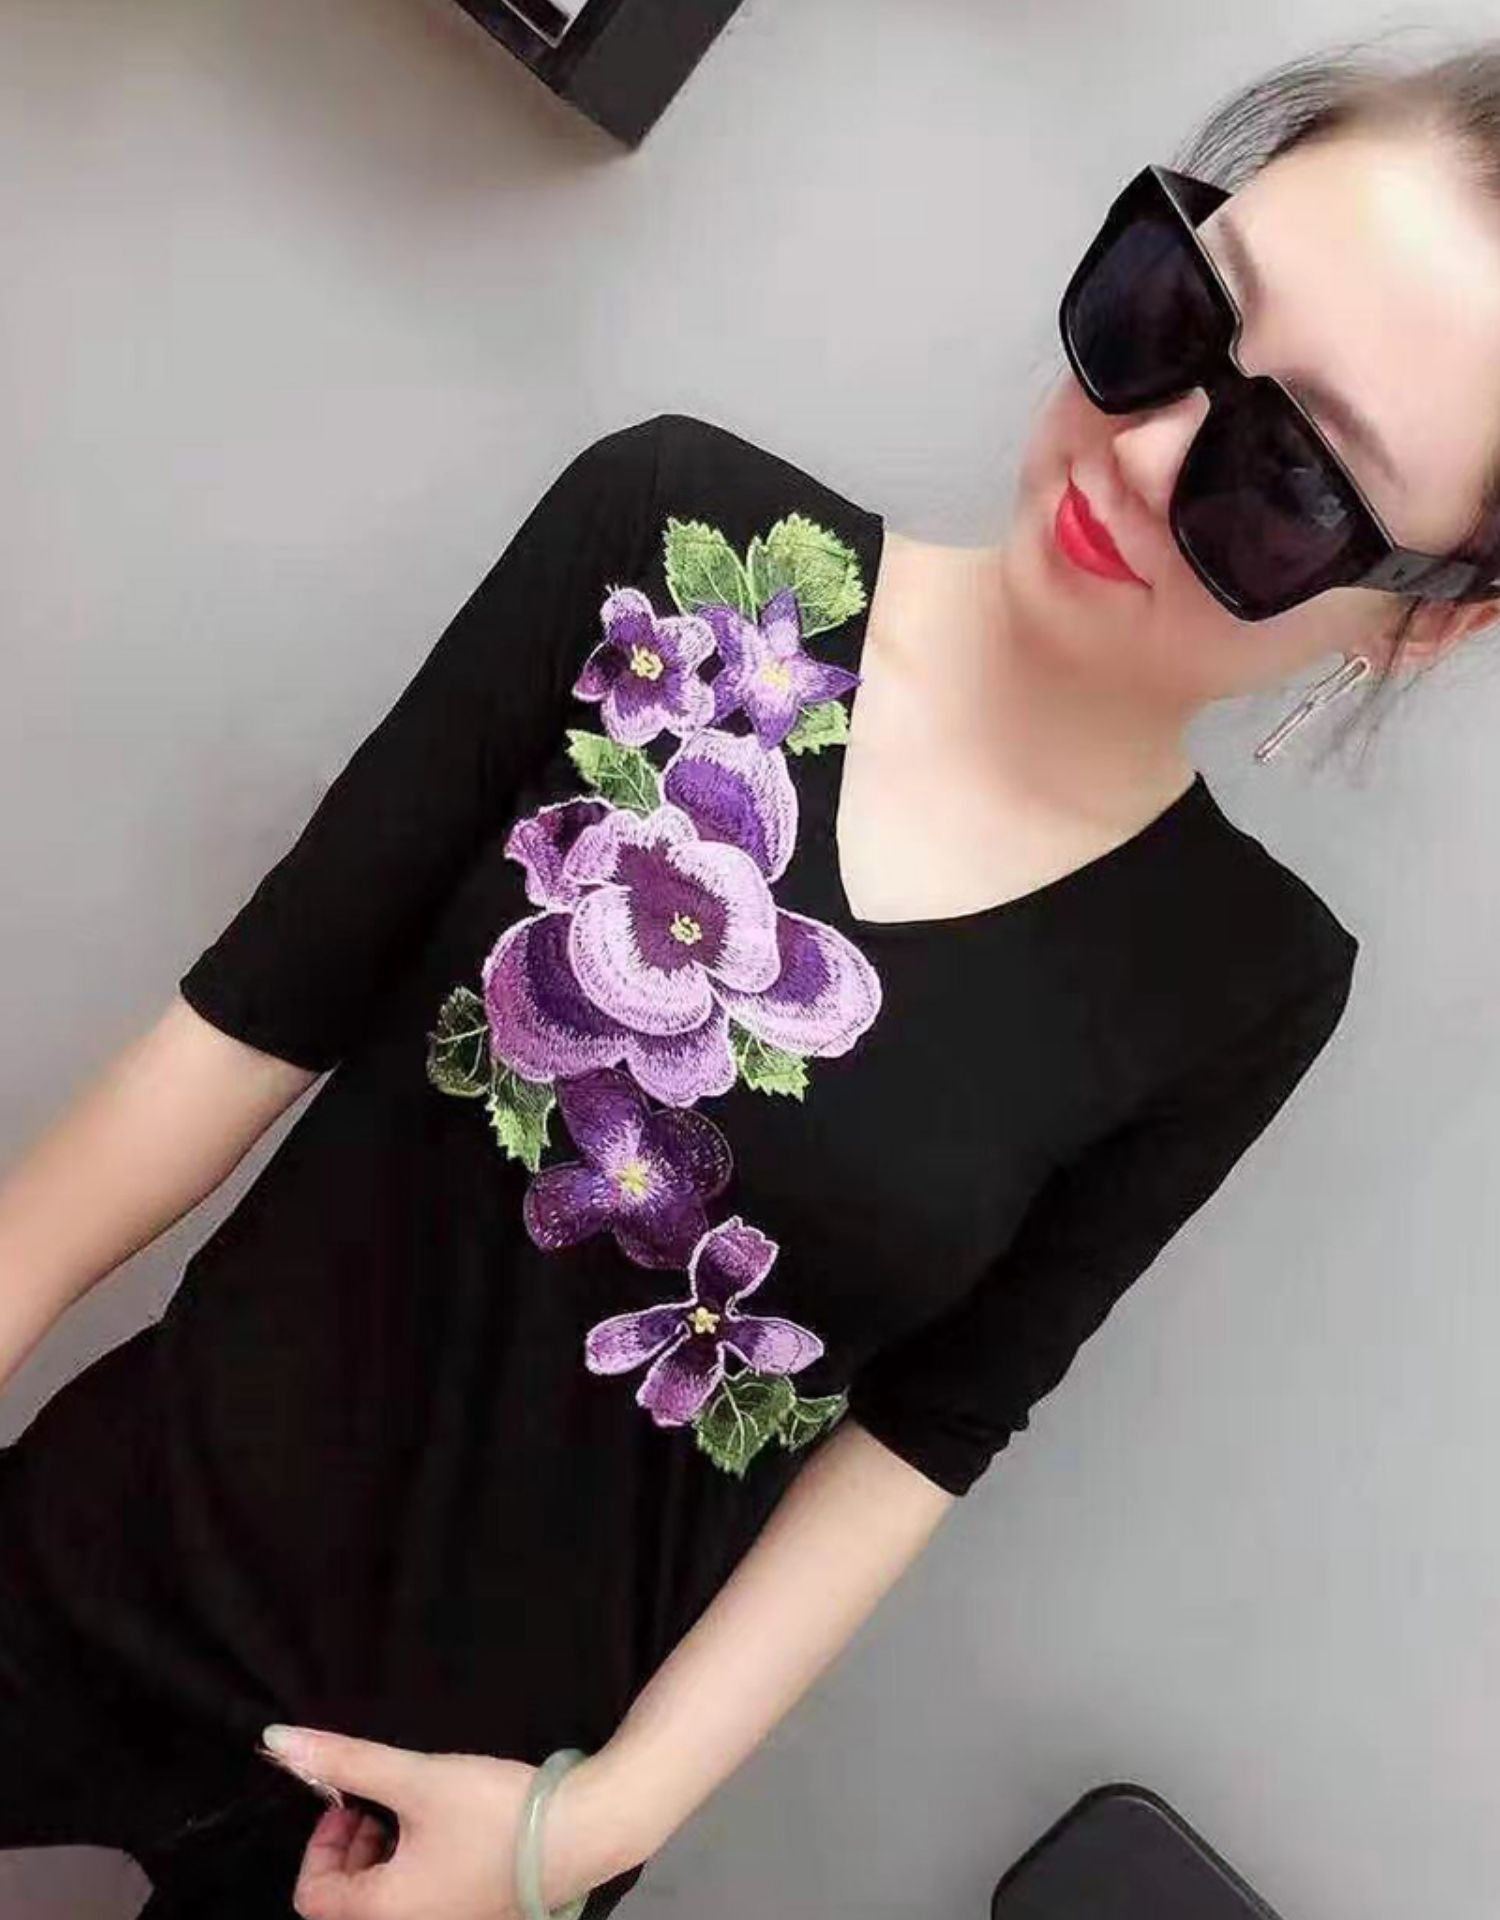 2018 Spring Half Sleeve Stand Collar Flower Embroidery Cotton T-shirts Women Fashion Body Strechy Cotton T-shirts Flower Tops